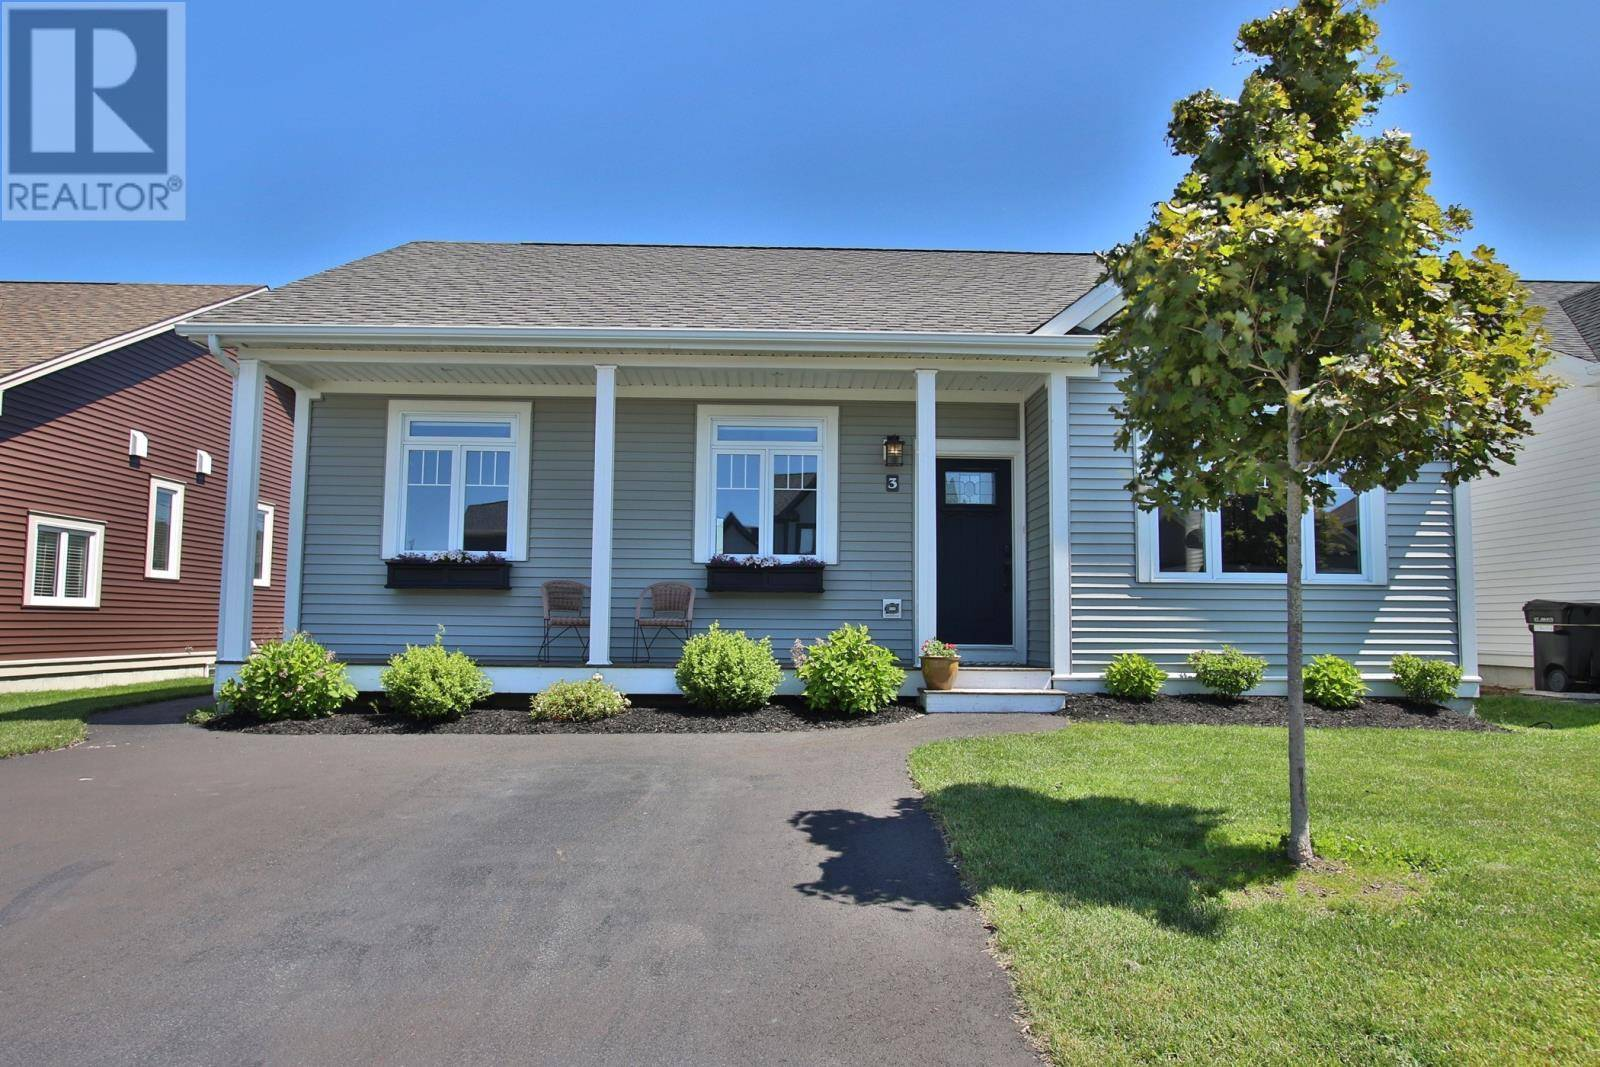 House for sale at 3 Tansley St St. John's Newfoundland - MLS: 1205213